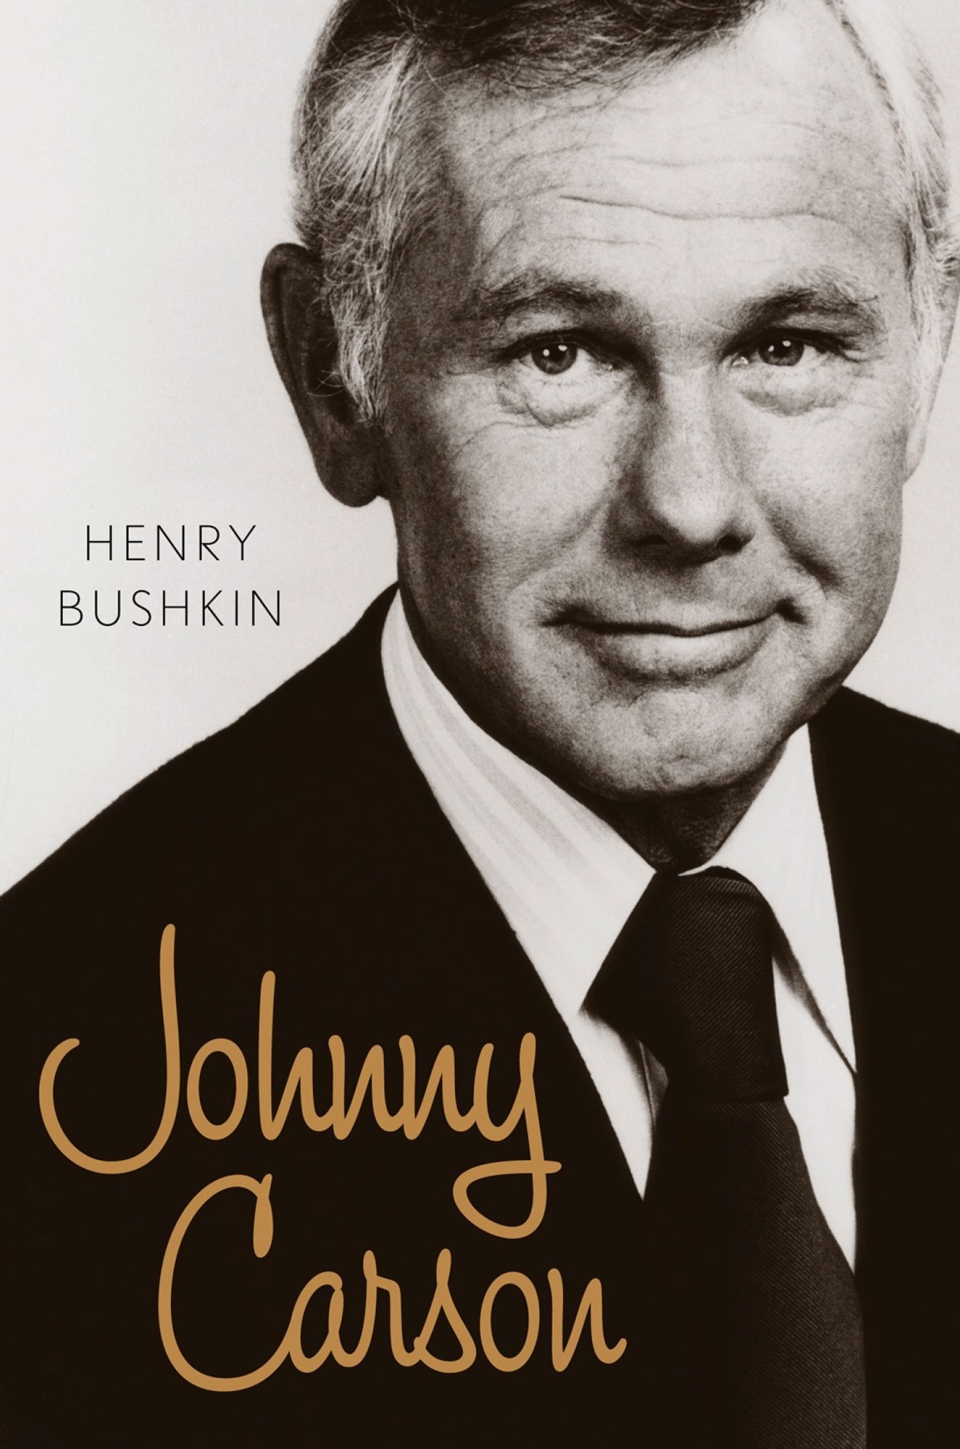 This image provided by Eamon Dolan/Houghton Mifflin Harcourt shows the book cover of Henry Bushkin's 'Johnny Carson,' which offers a peak inside the TV host's life. (AP / Eamon Dolan / Houghton Mifflin Harcourt)